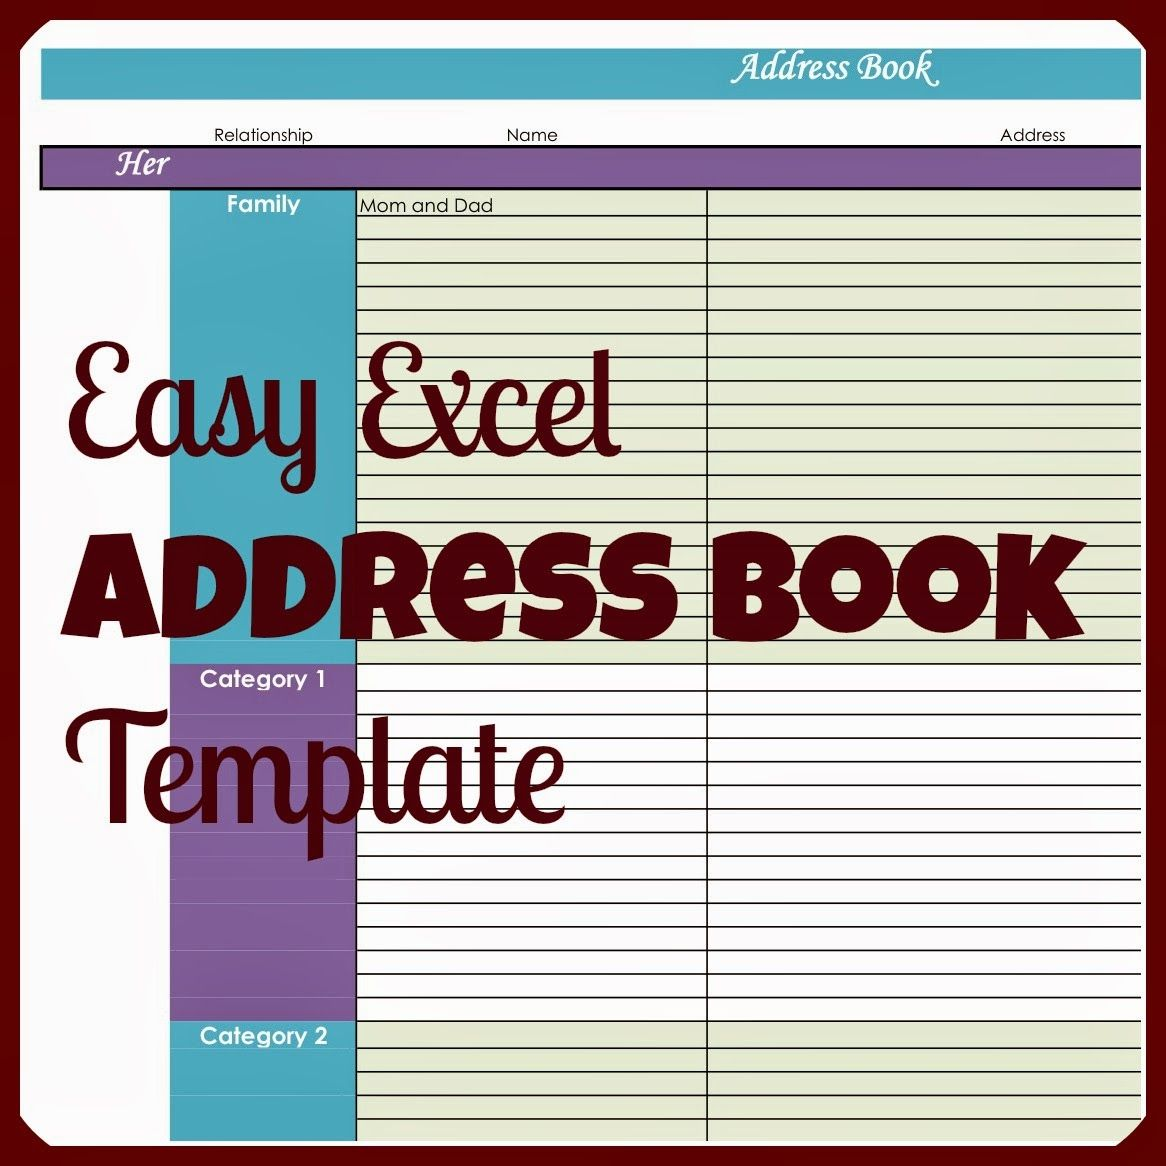 Easy Excel Address Book Template